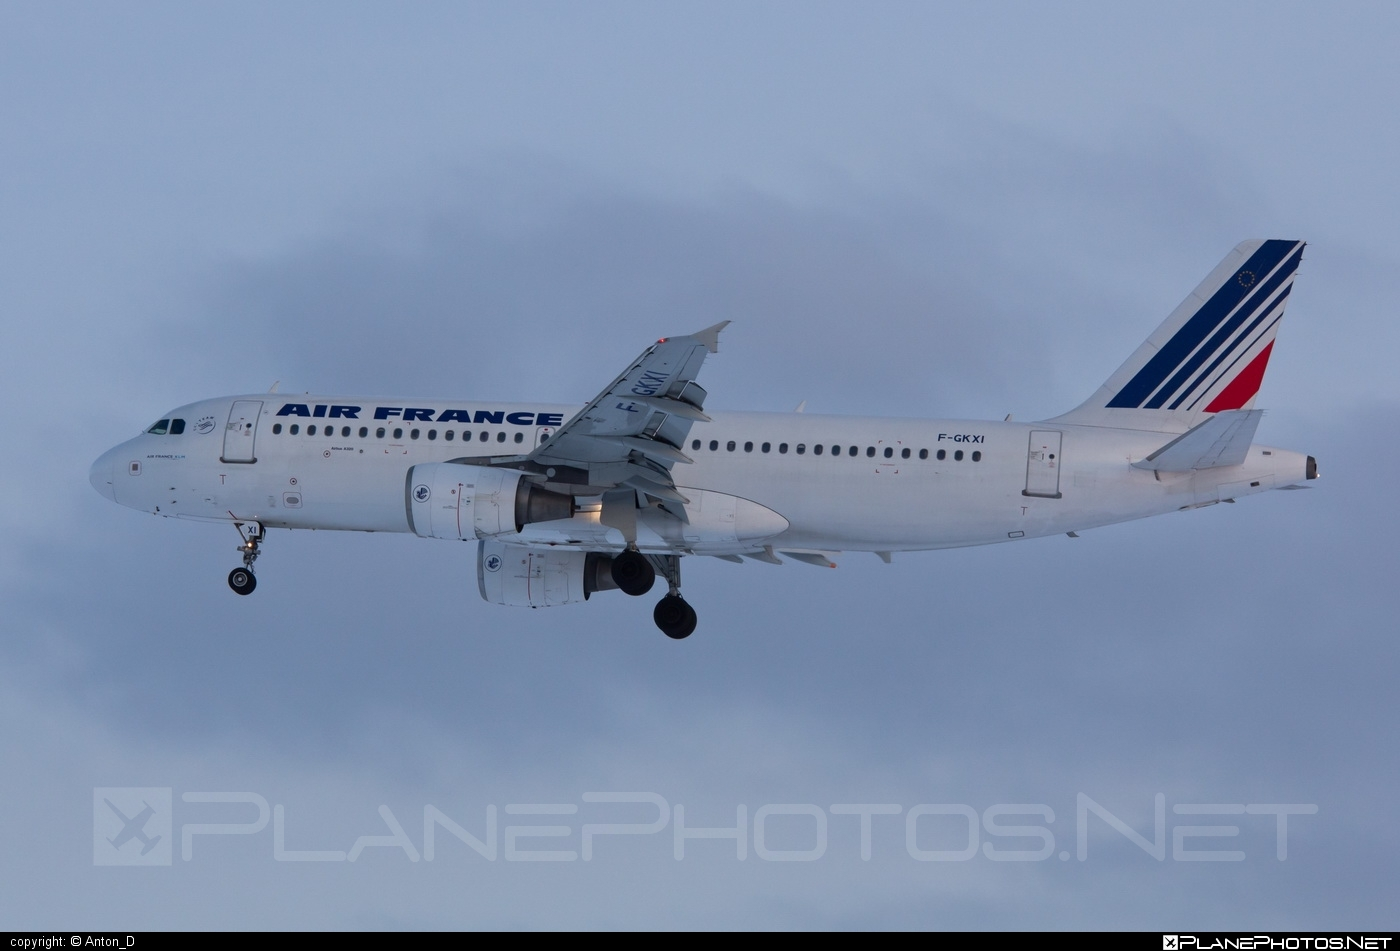 Airbus A320-214 - F-GKXI operated by Air France #a320 #a320family #airbus #airbus320 #airfrance